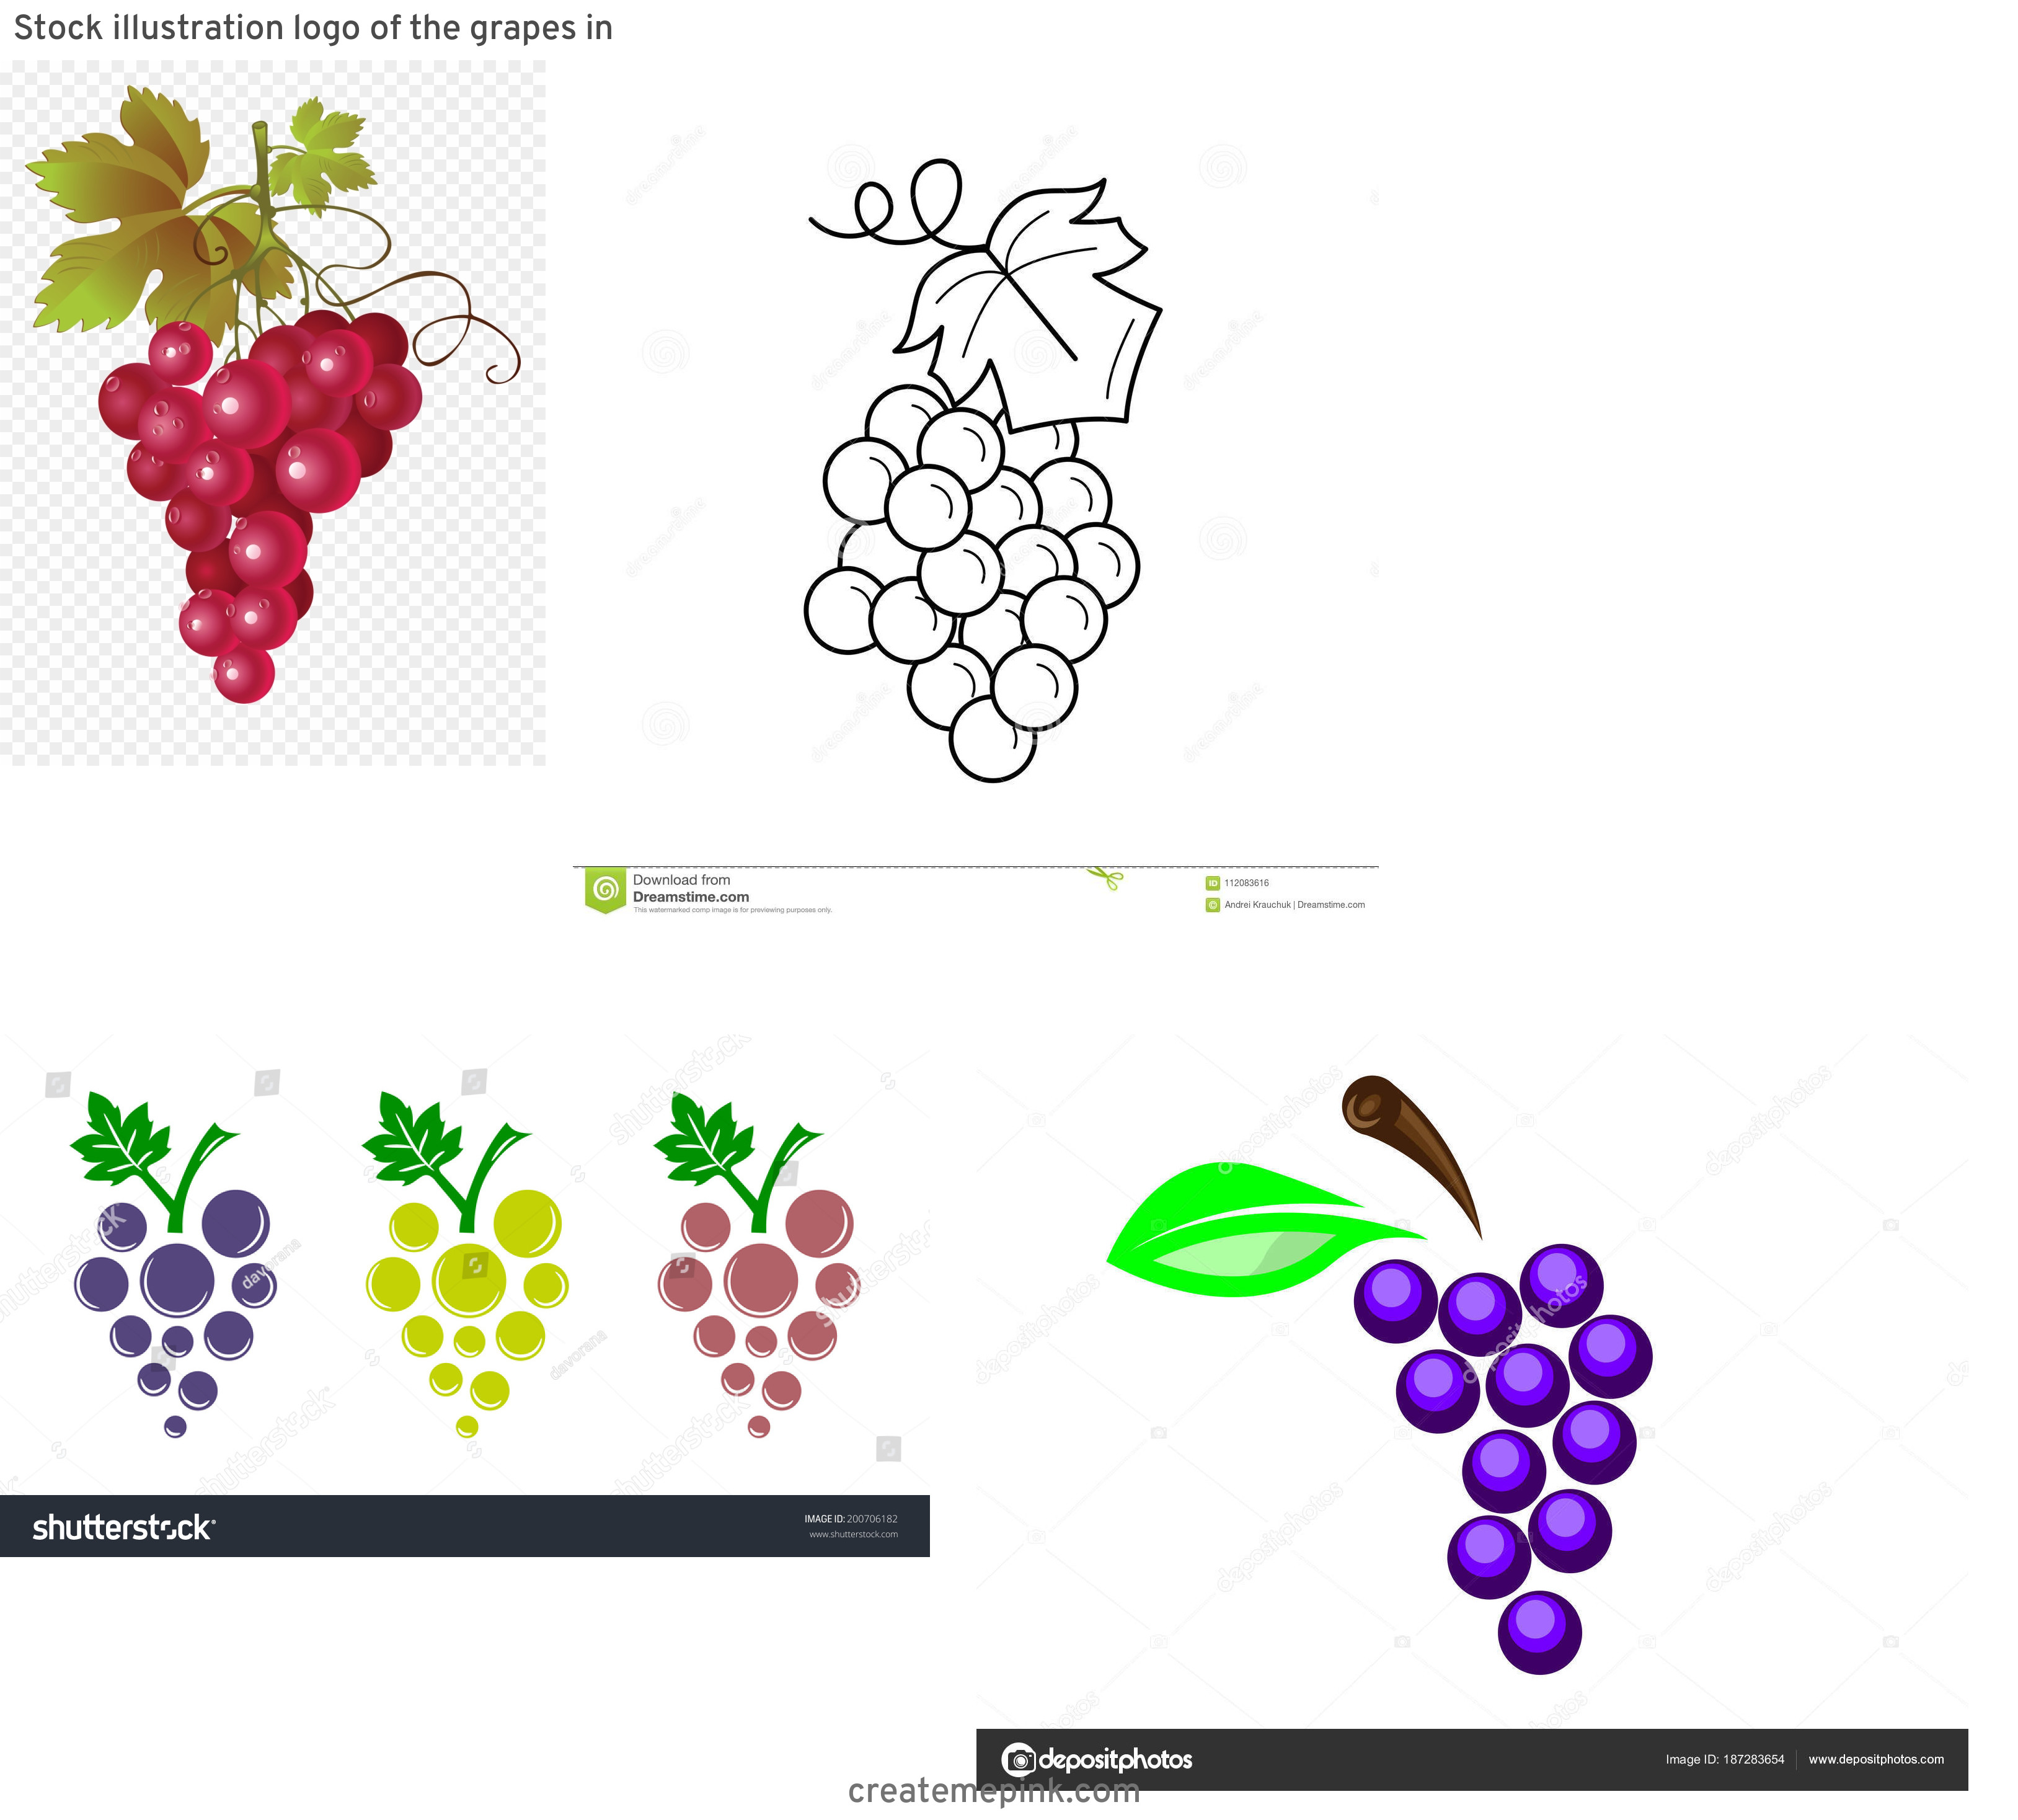 Grapes Vector Art: Stock Illustration Logo Of The Grapes In